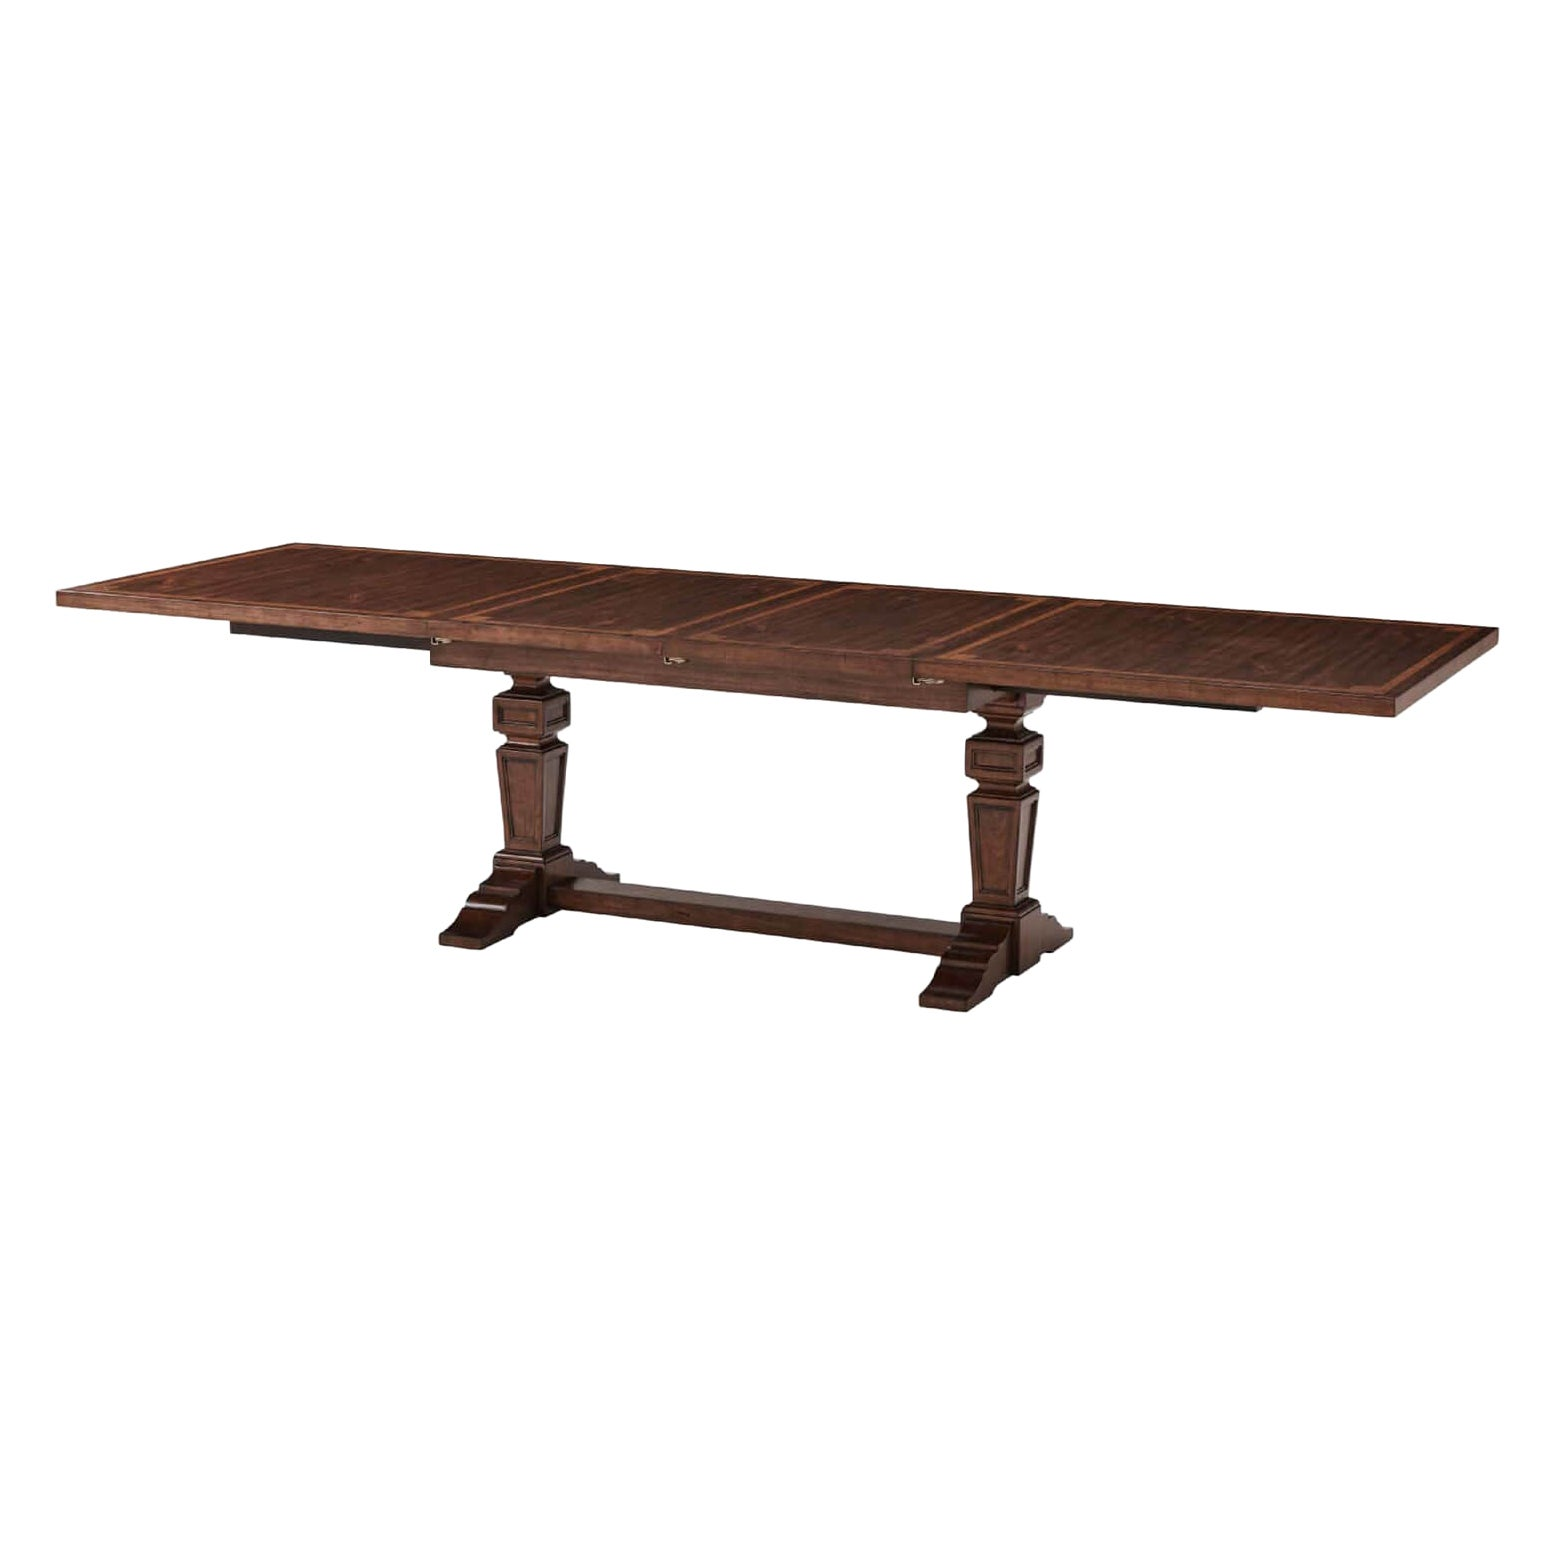 Provincial Neoclassic Extension Dining Table